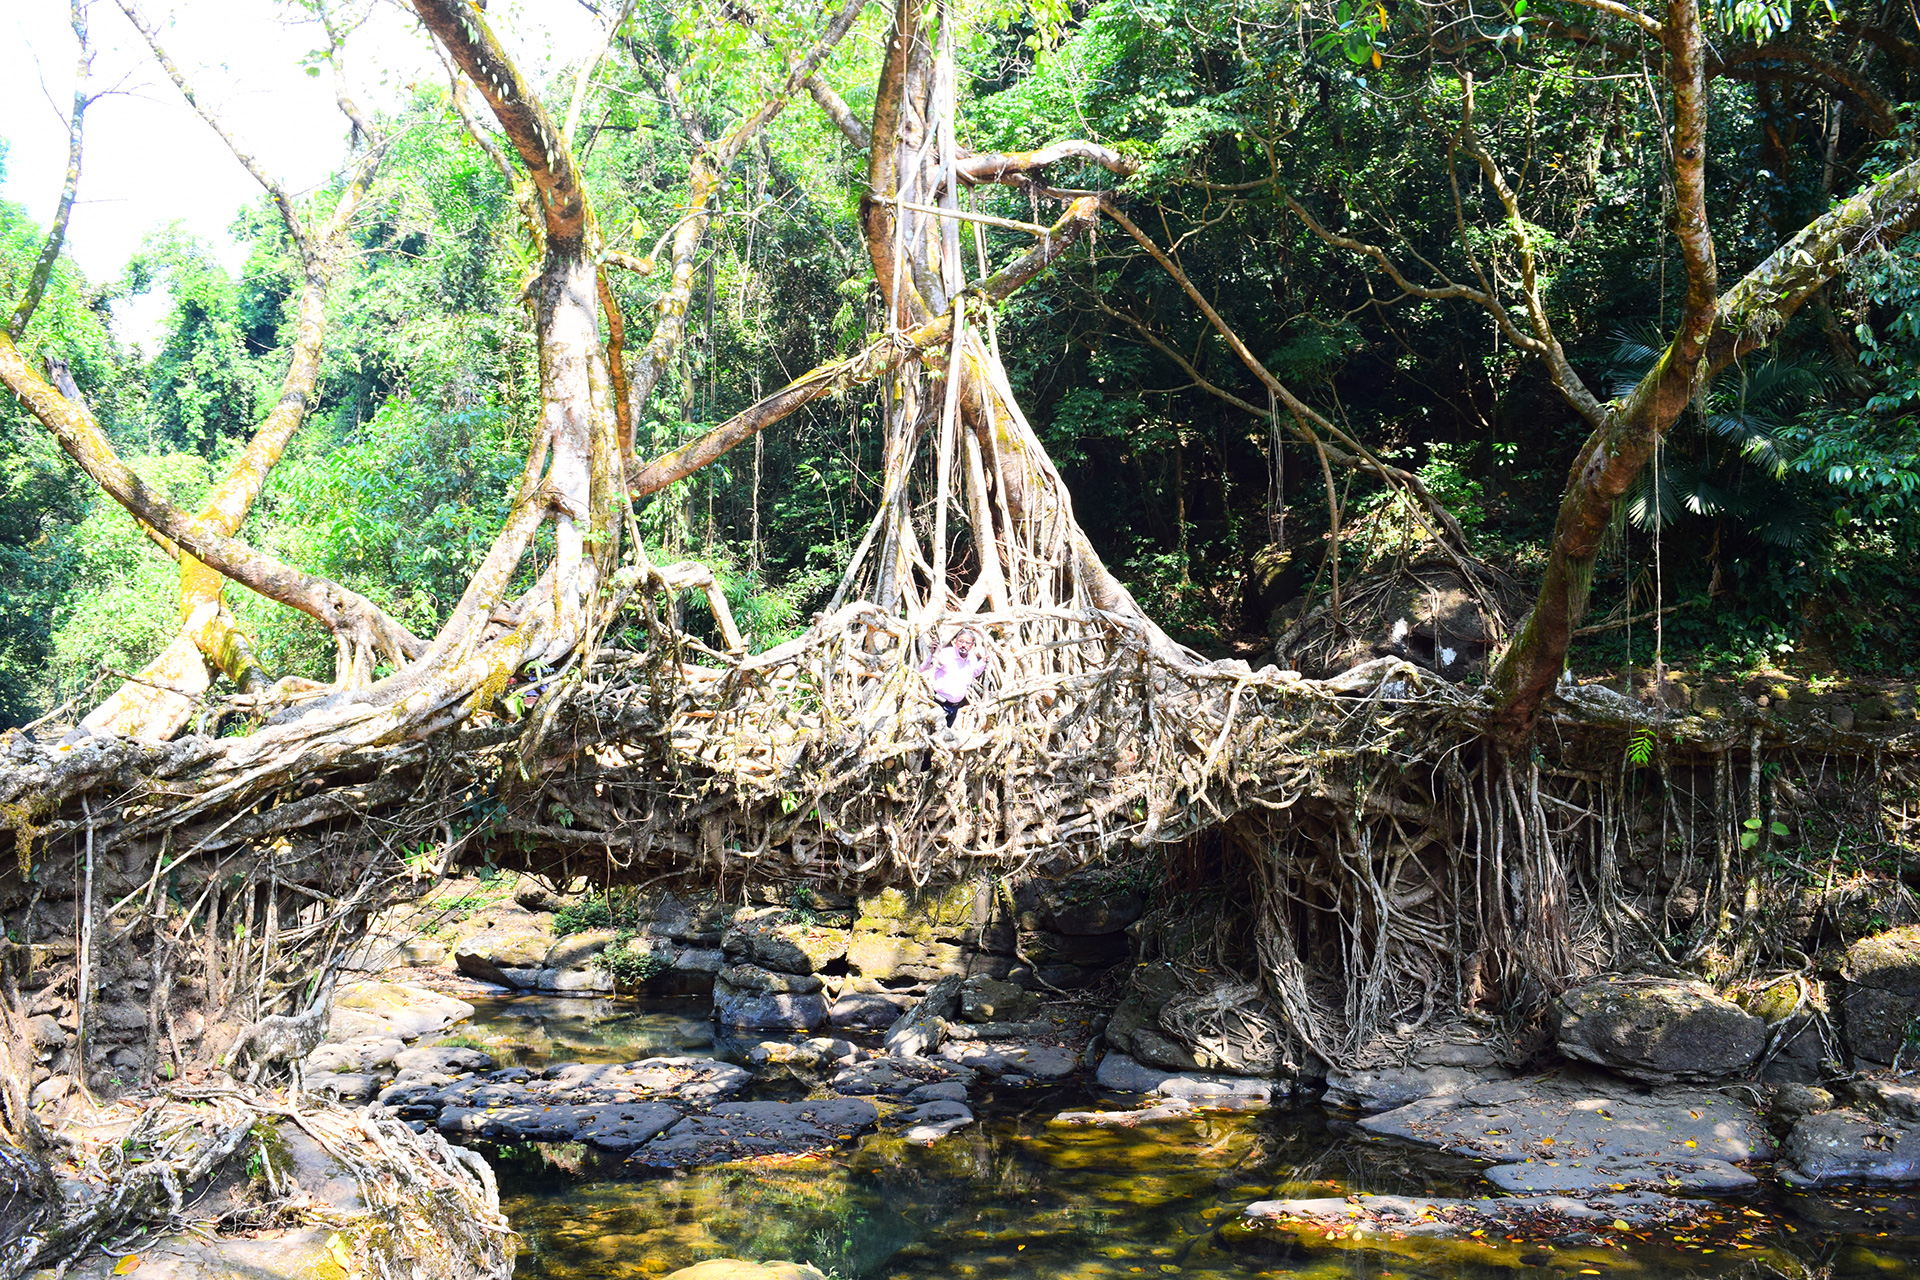 Living roots bridge in North East India | Shirish Beri | STIR